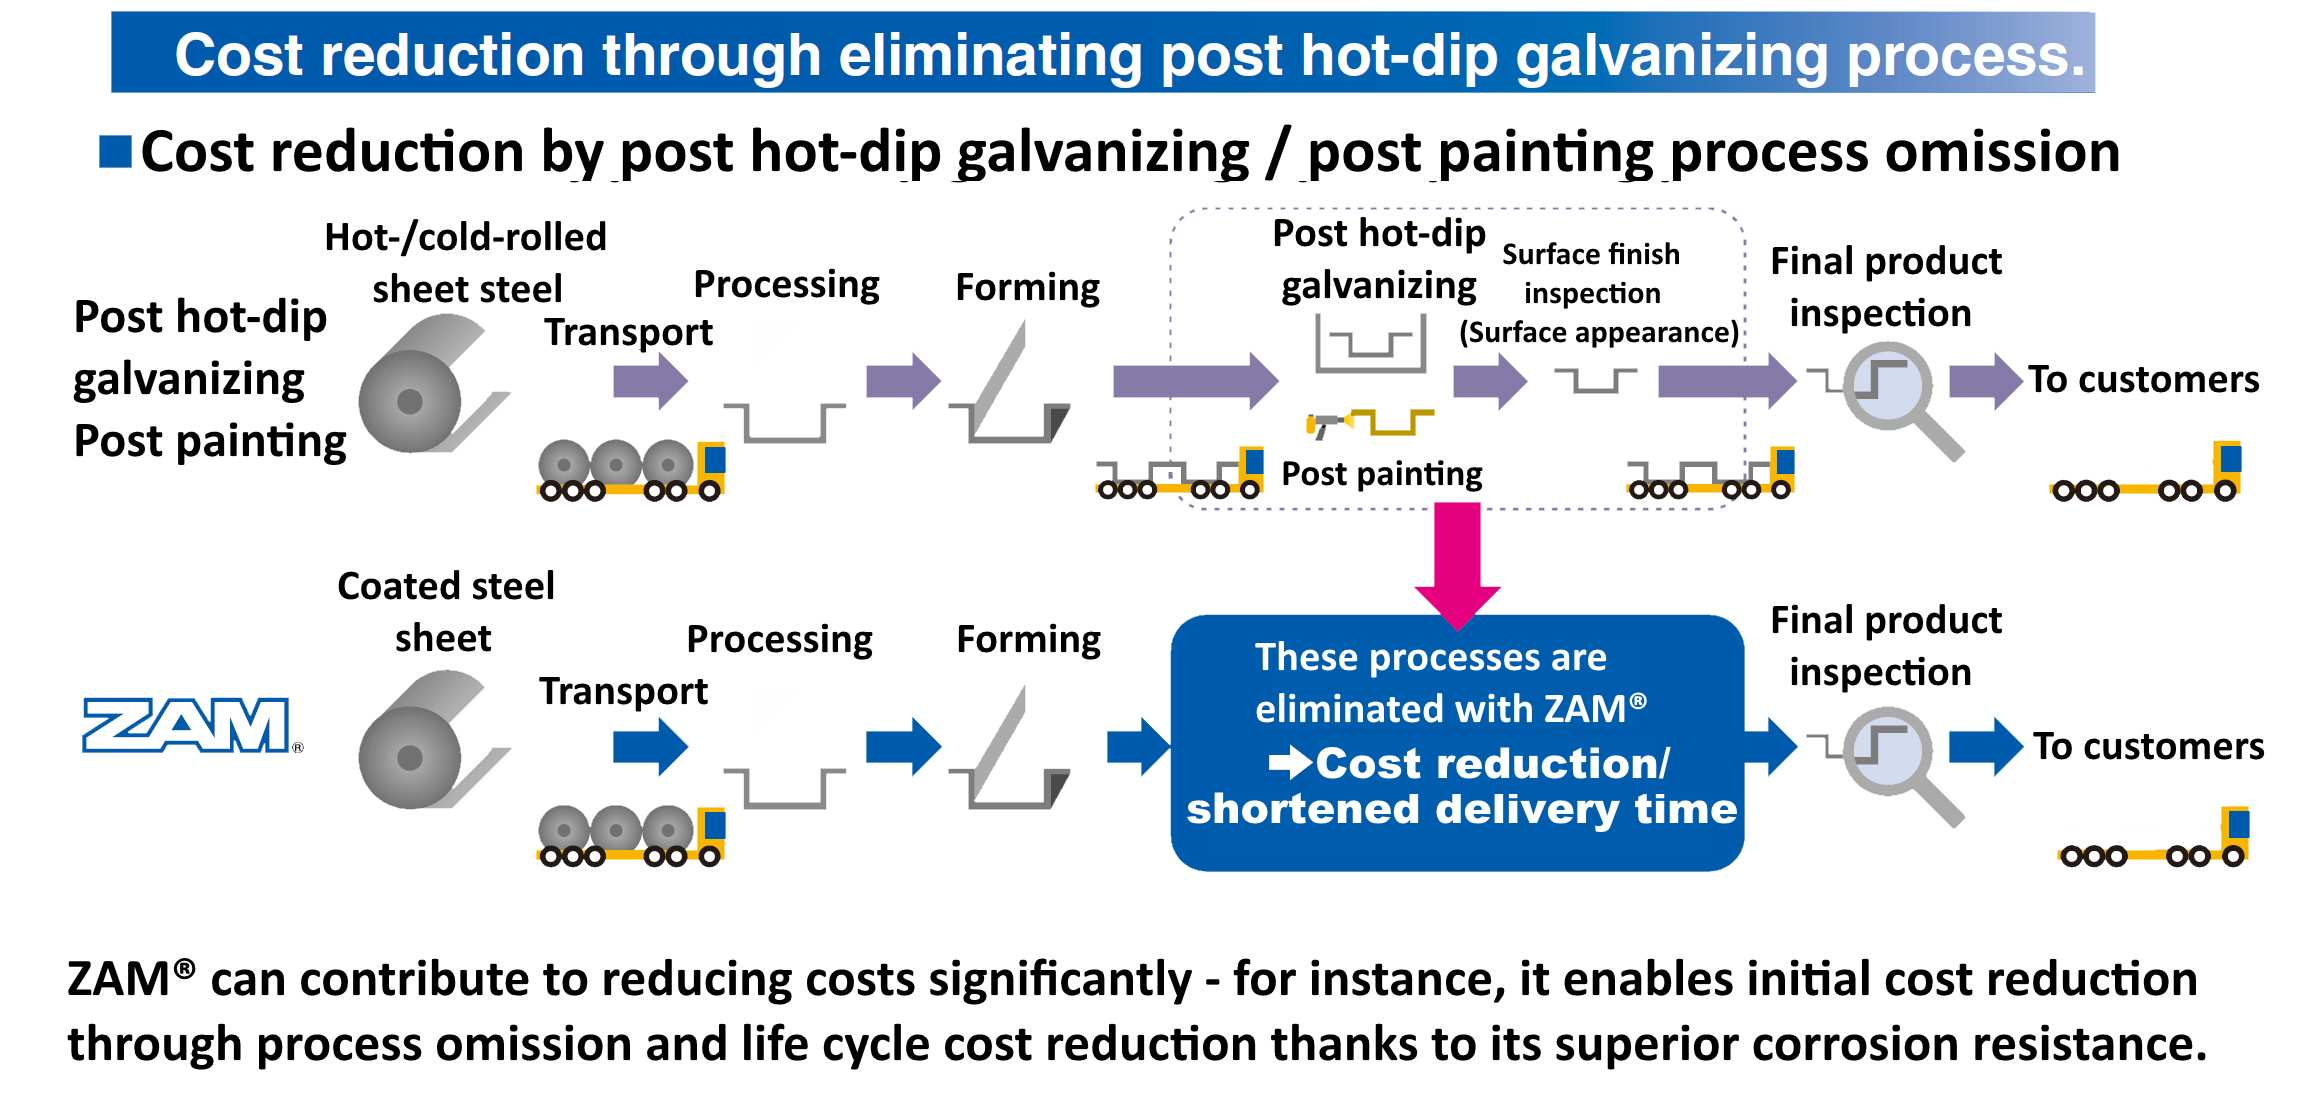 Cost reduction by elimination of post dip galvanizing and post painting